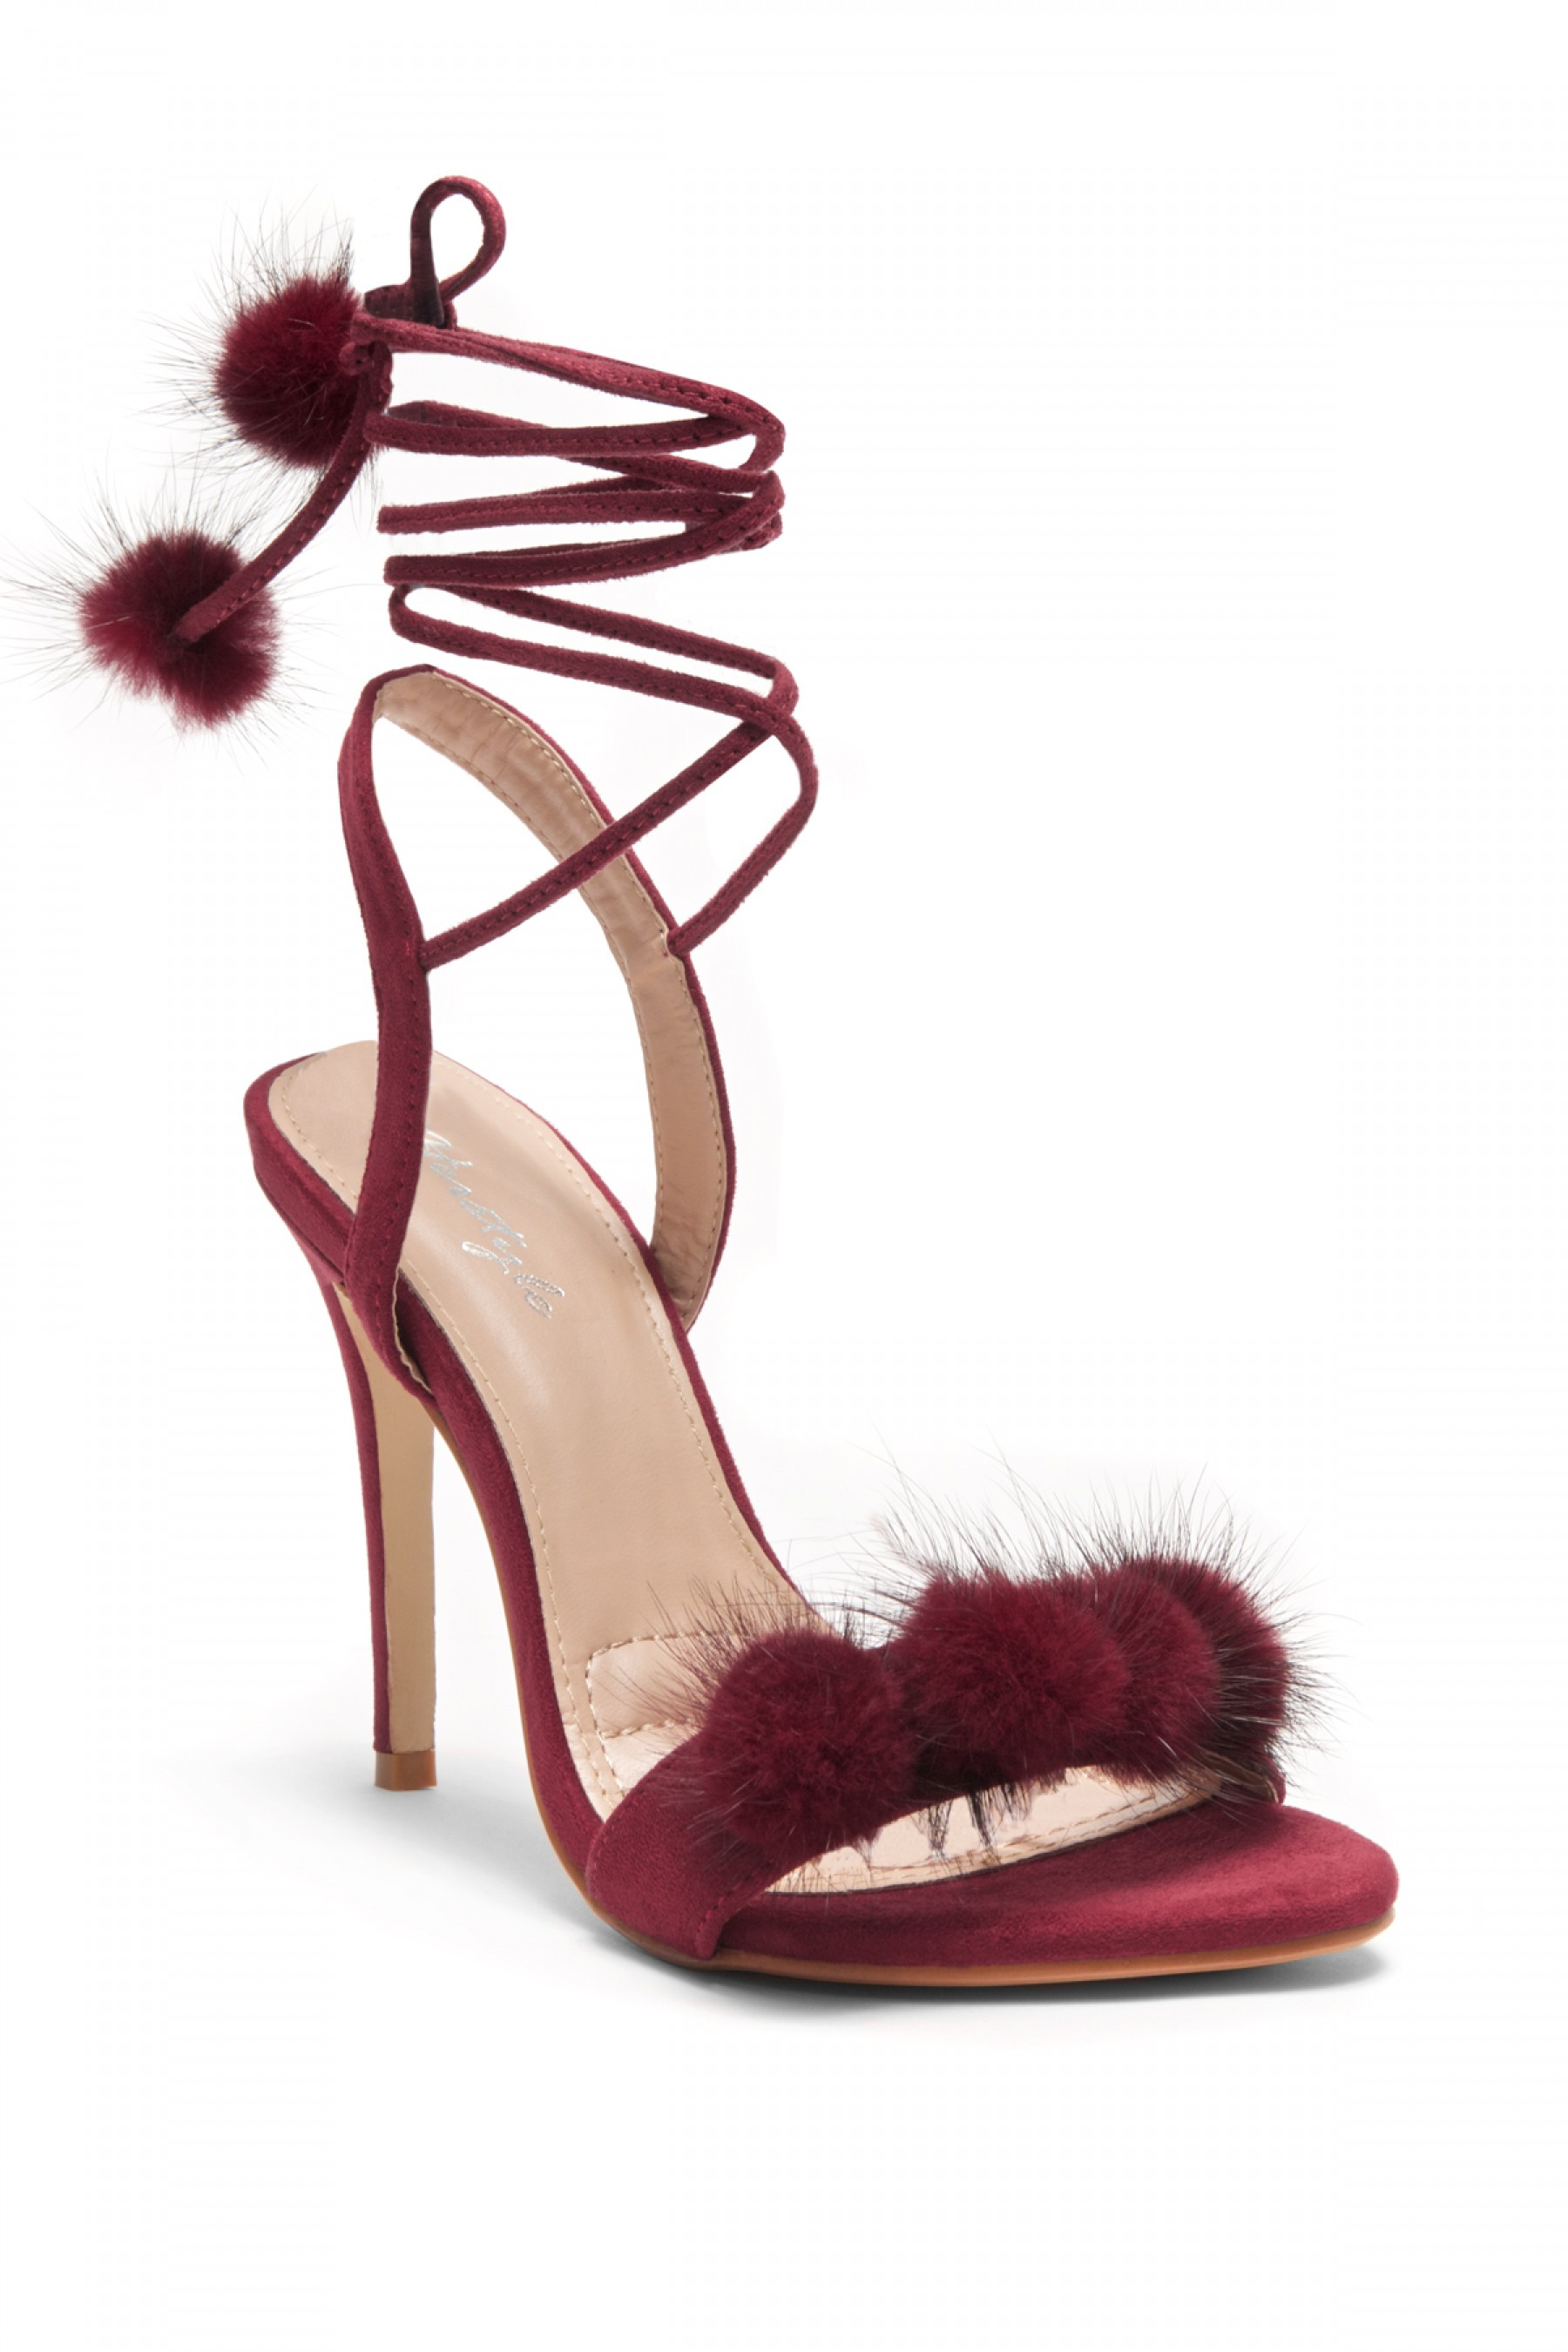 853b4934afd4f Herstyle Women,s Elissee Faux Pom Pom accents, Ankle lace-up, Stiletto Heel  - Burgundy